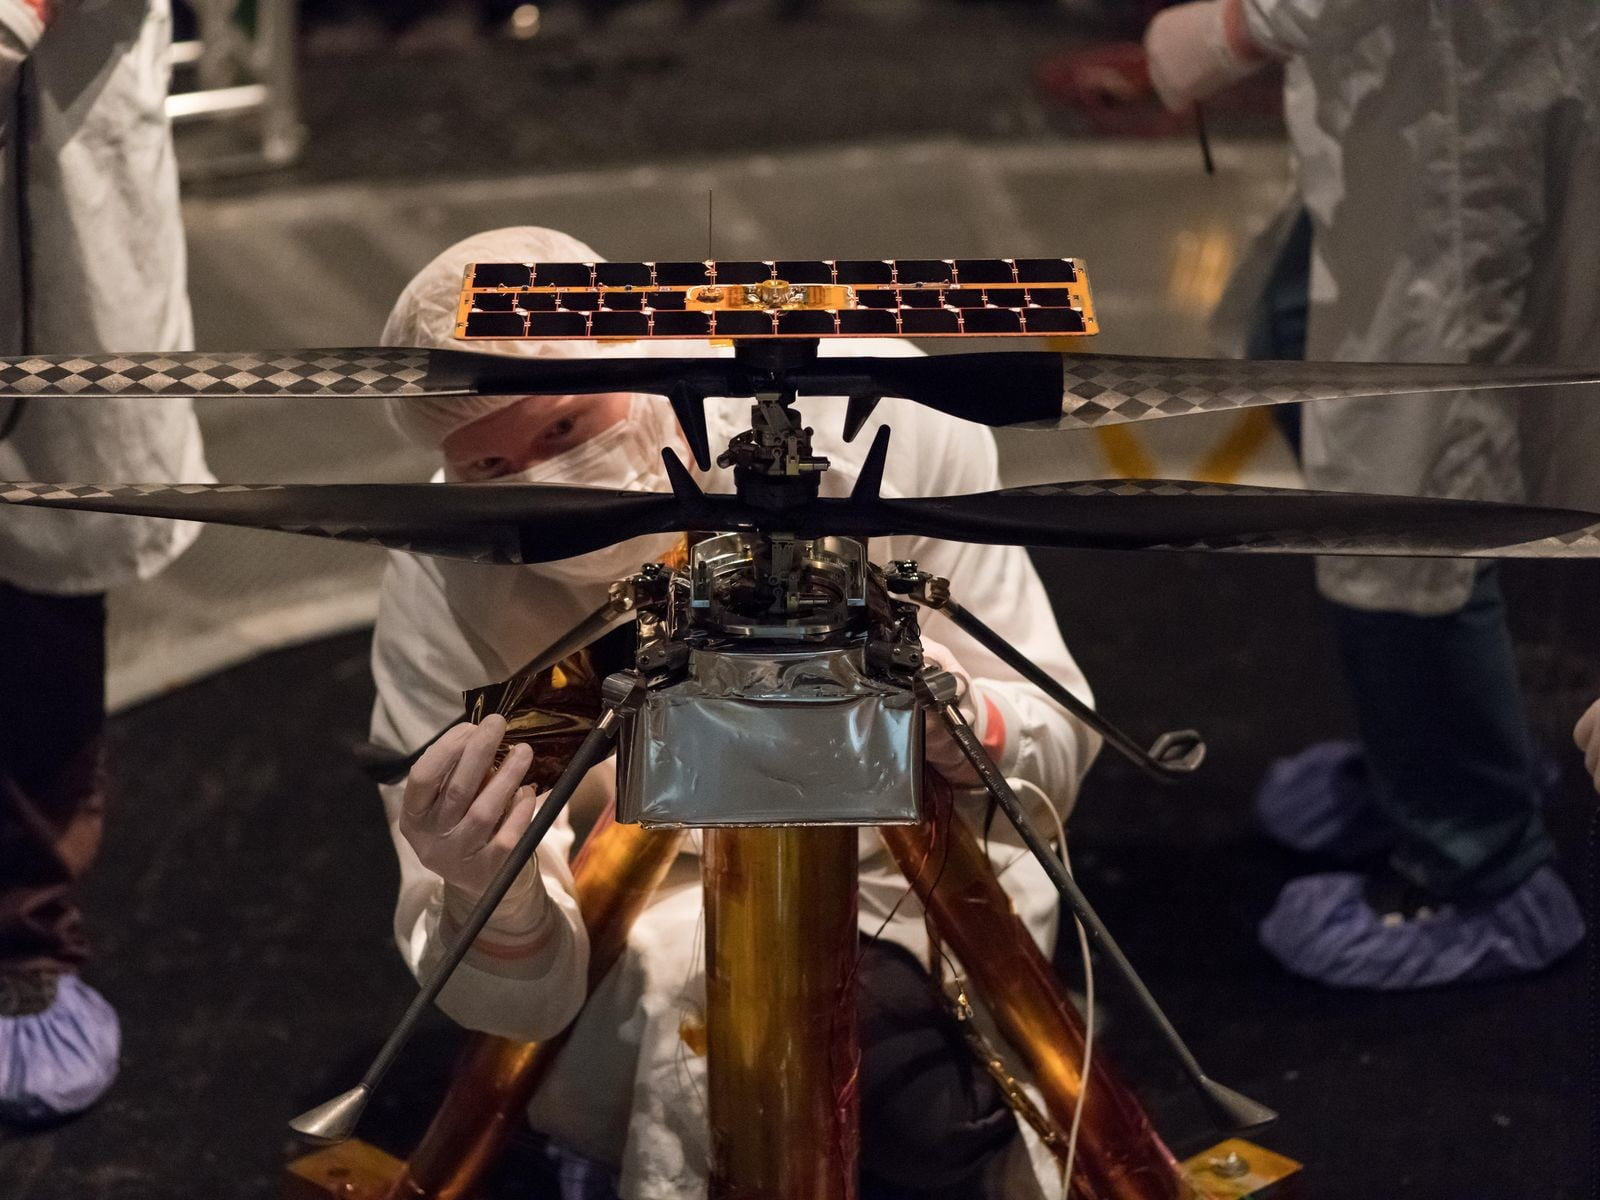 Autonomous helicopter joins its rover buddy for Mars 2020 mission